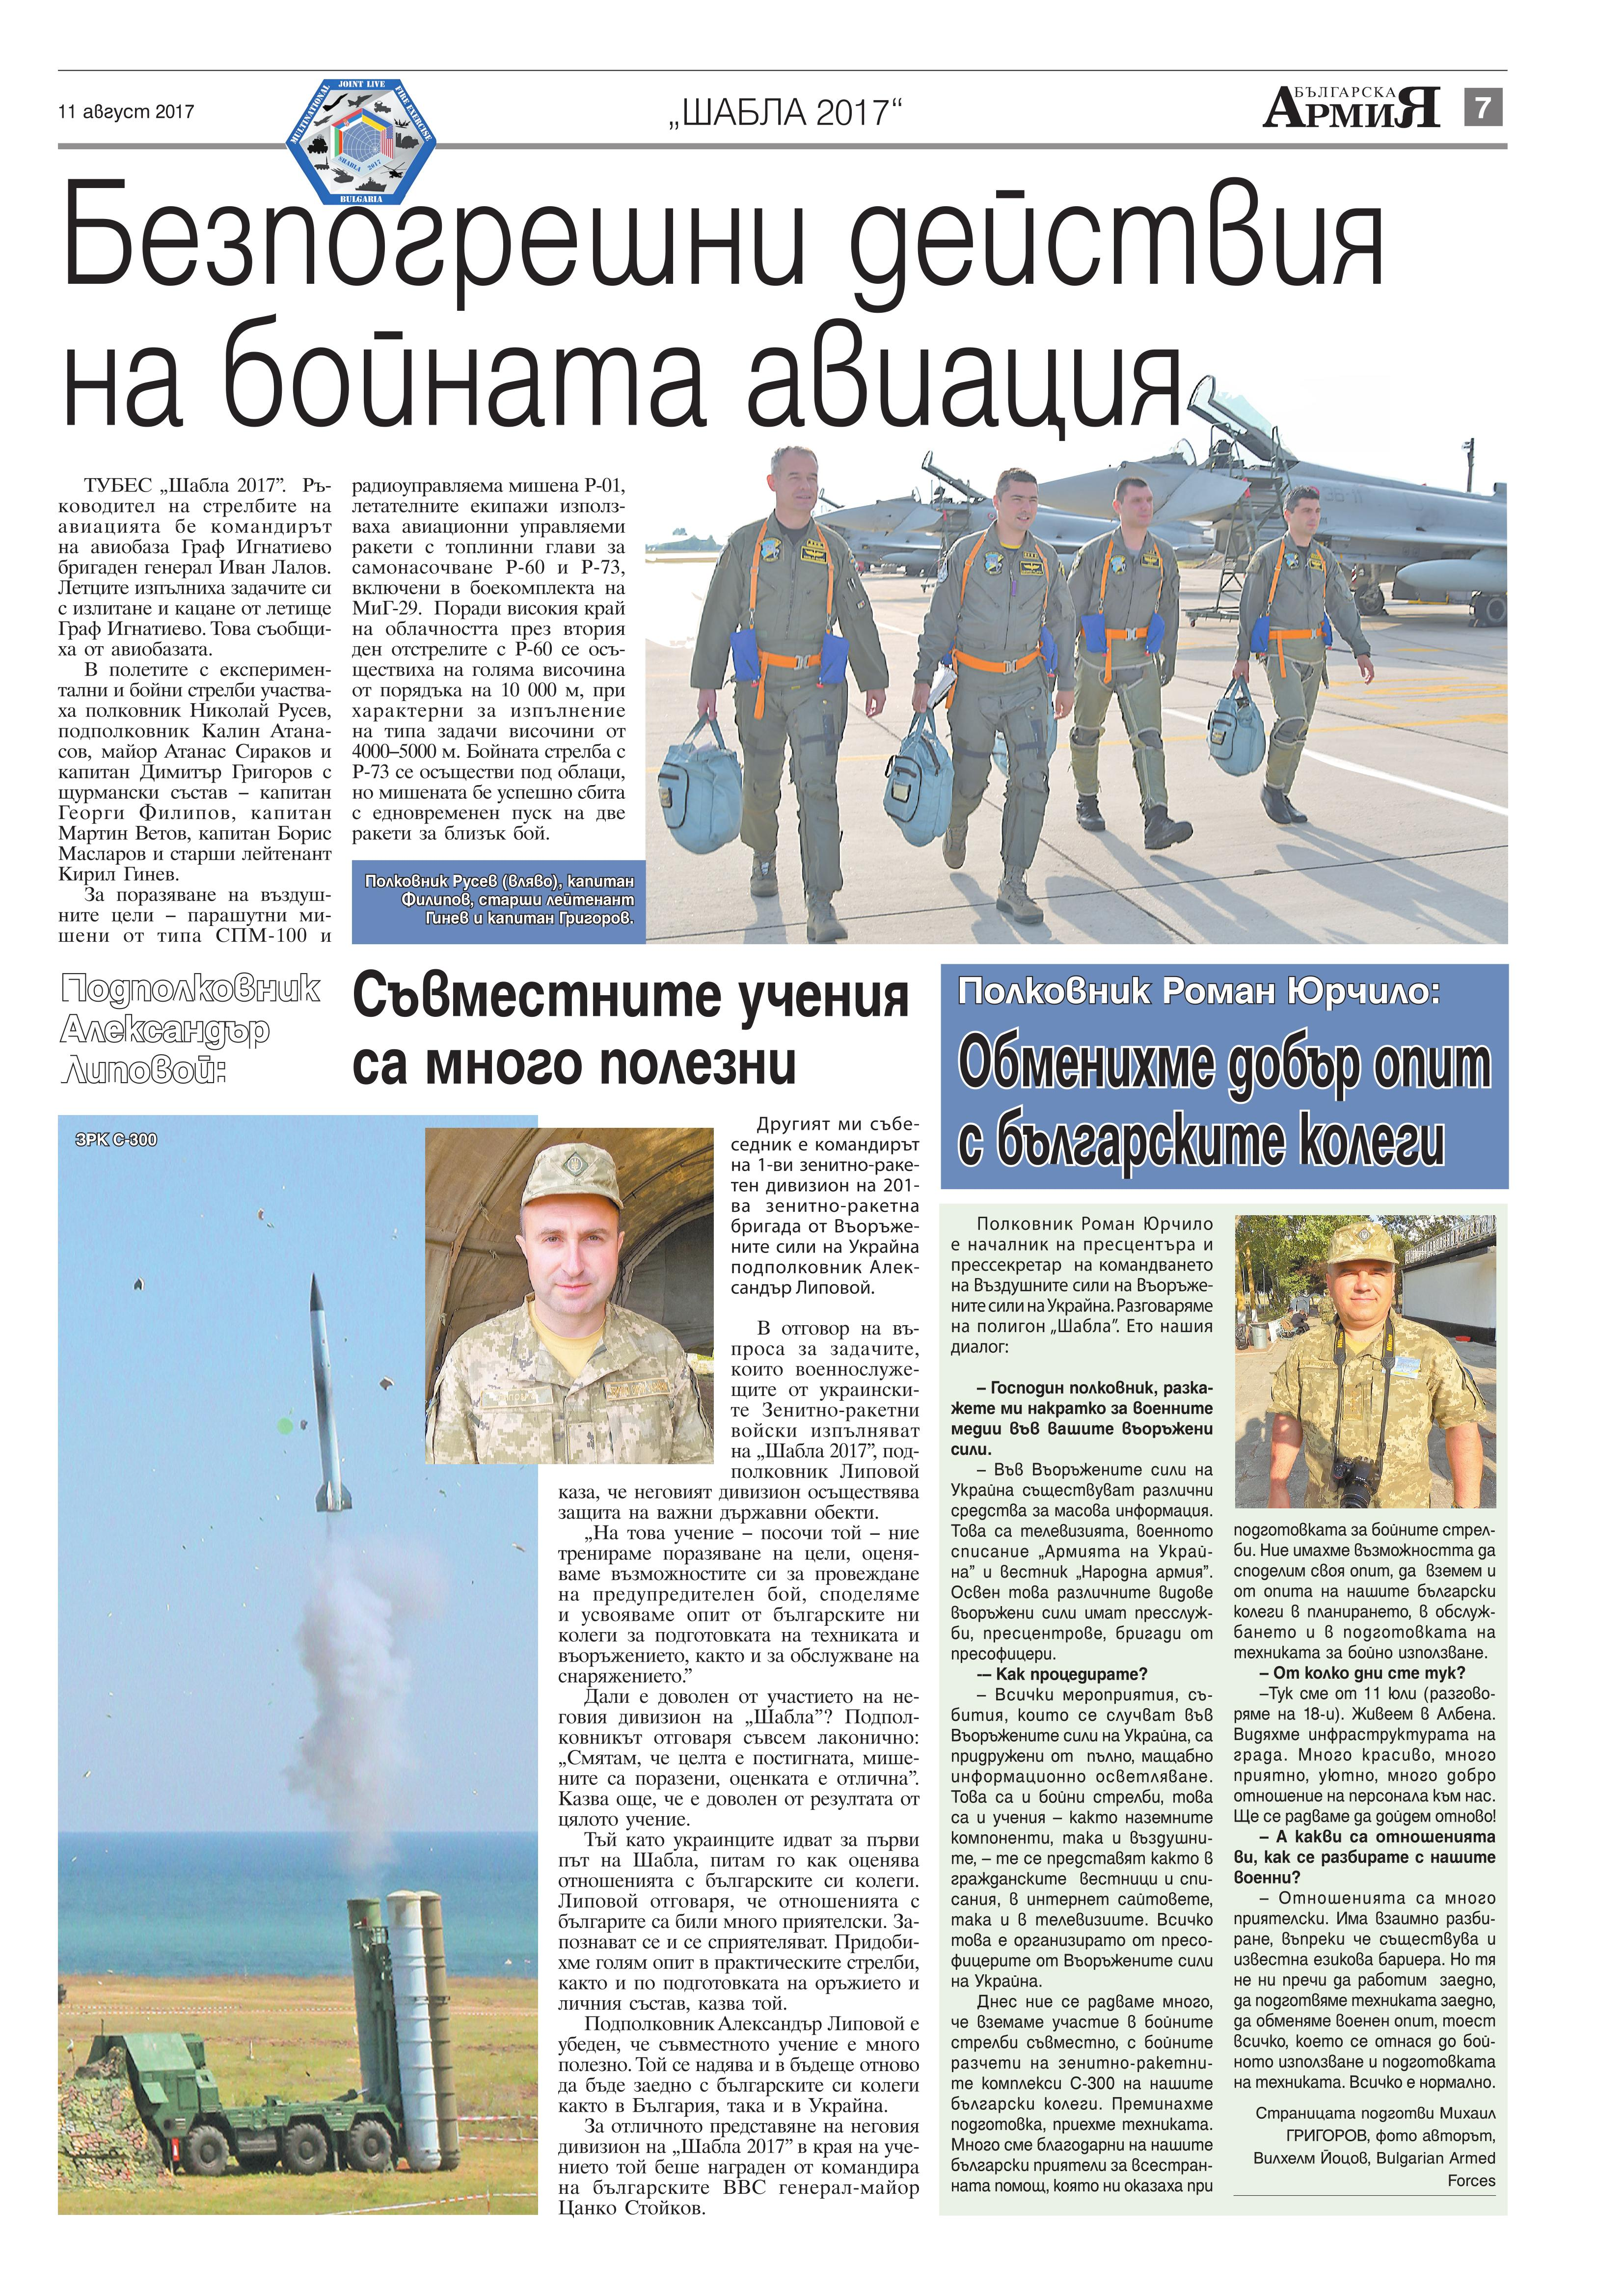 http://armymedia.bg/wp-content/uploads/2015/06/07.page1_-28.jpg